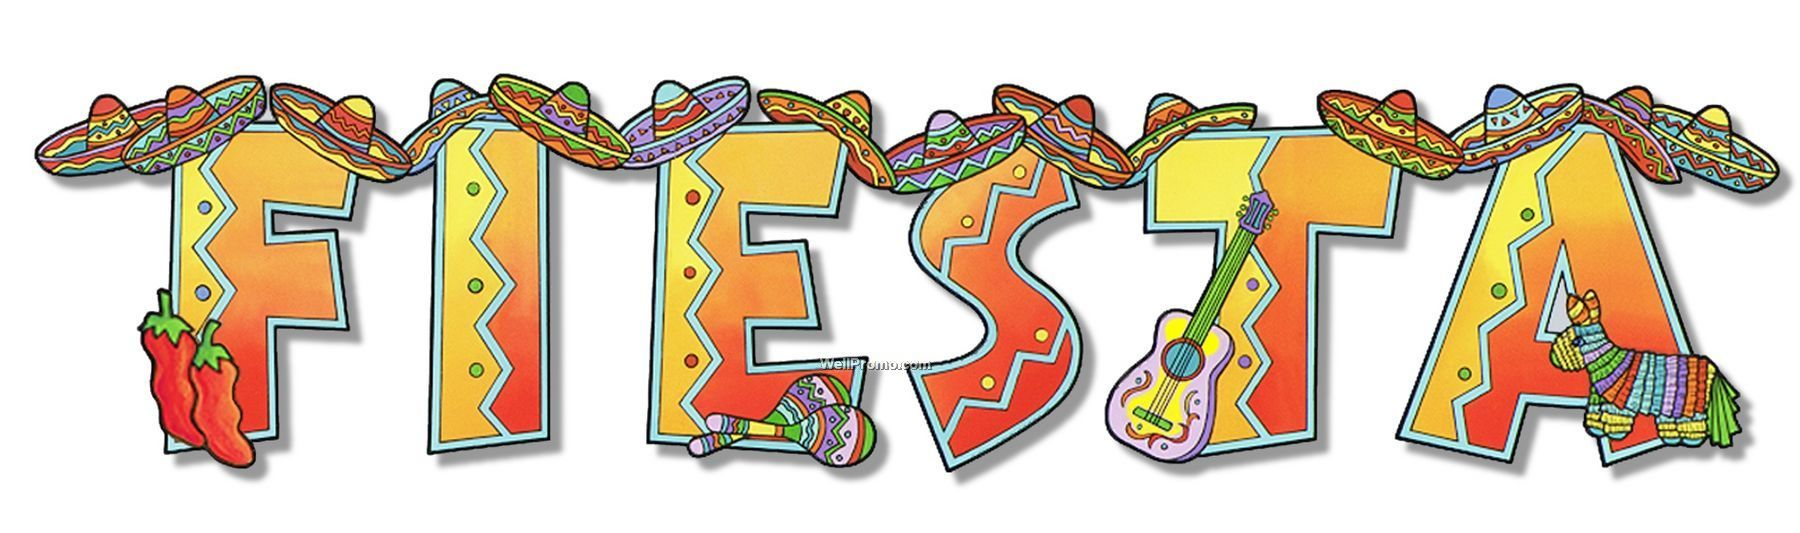 Word Mexico Clipart #12